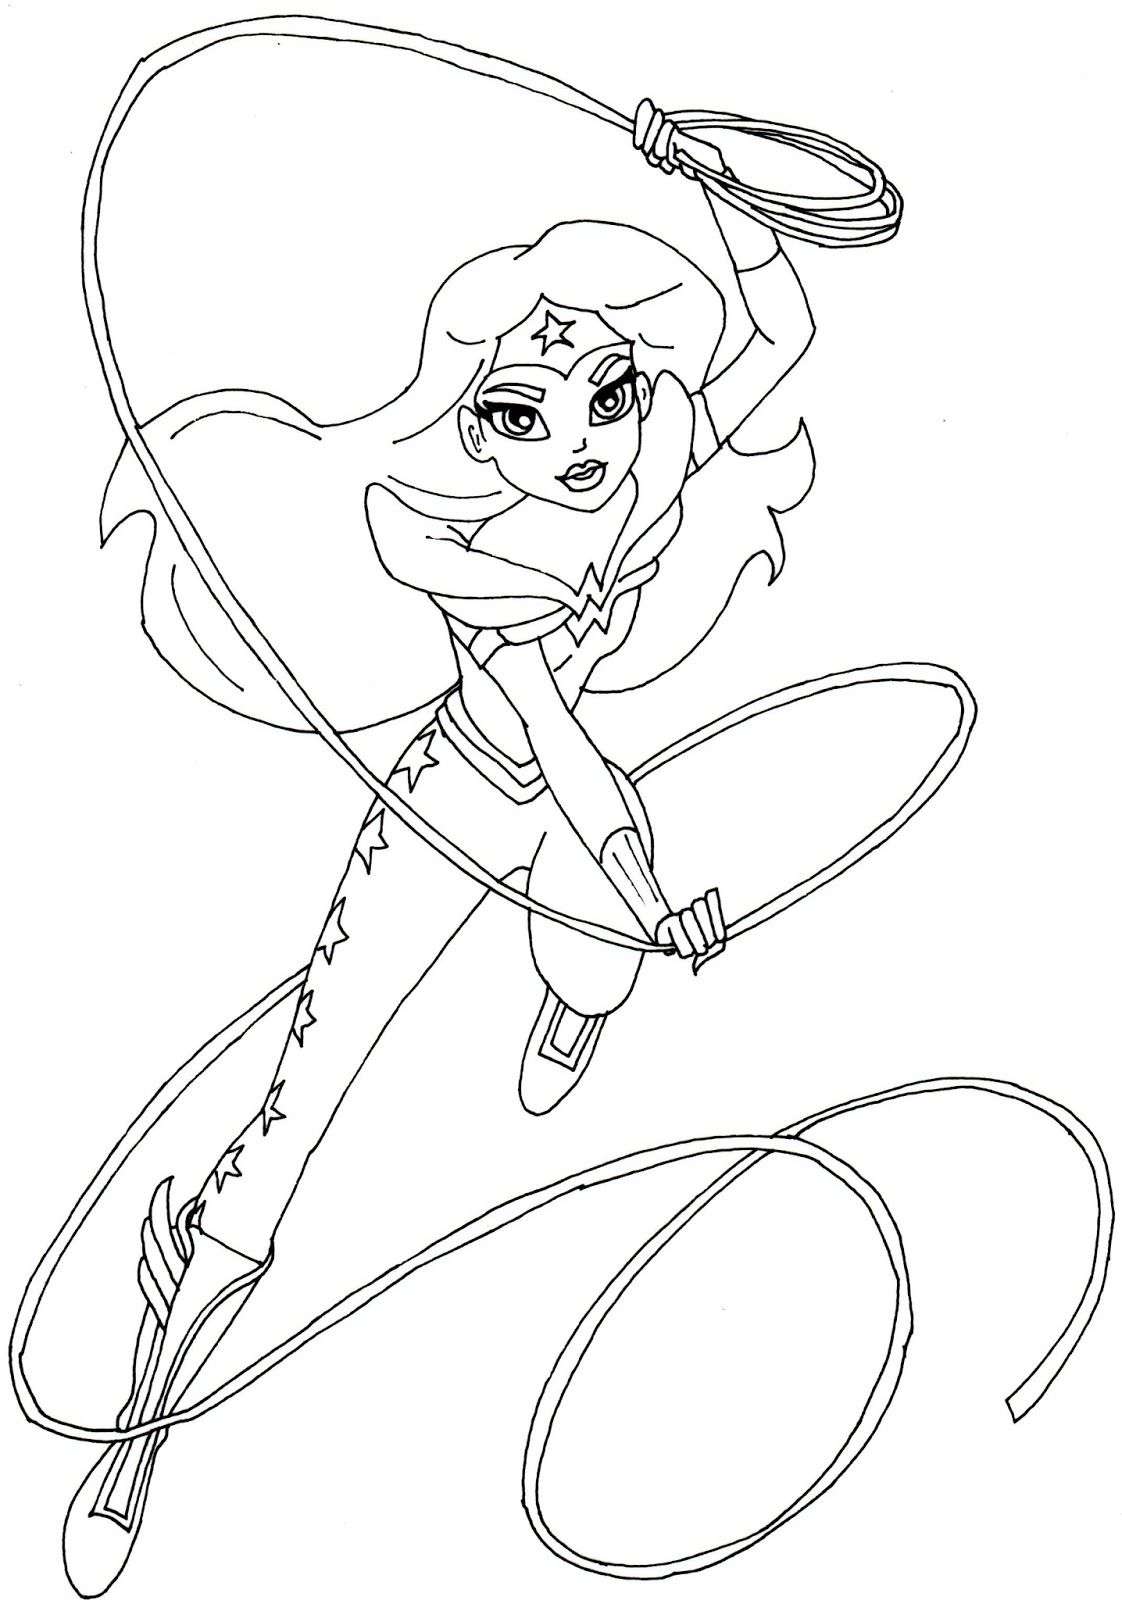 Pin by Coloring Fun on Super Hero Girls | Pinterest | Super hero ...